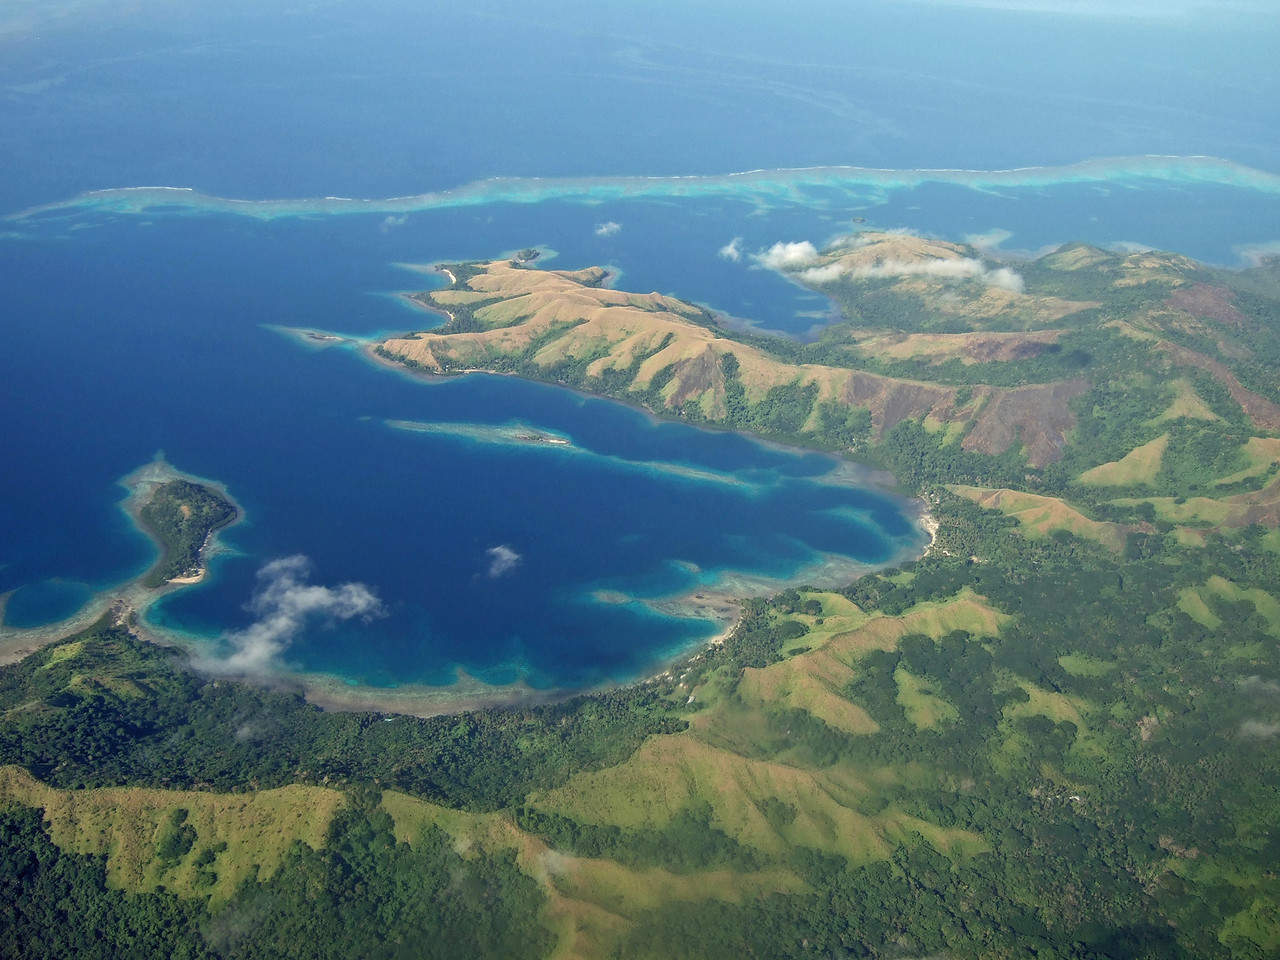 """Flying over one of Fiji's 322 islands on our way to Taveuni, """"the Garden Island"""""""